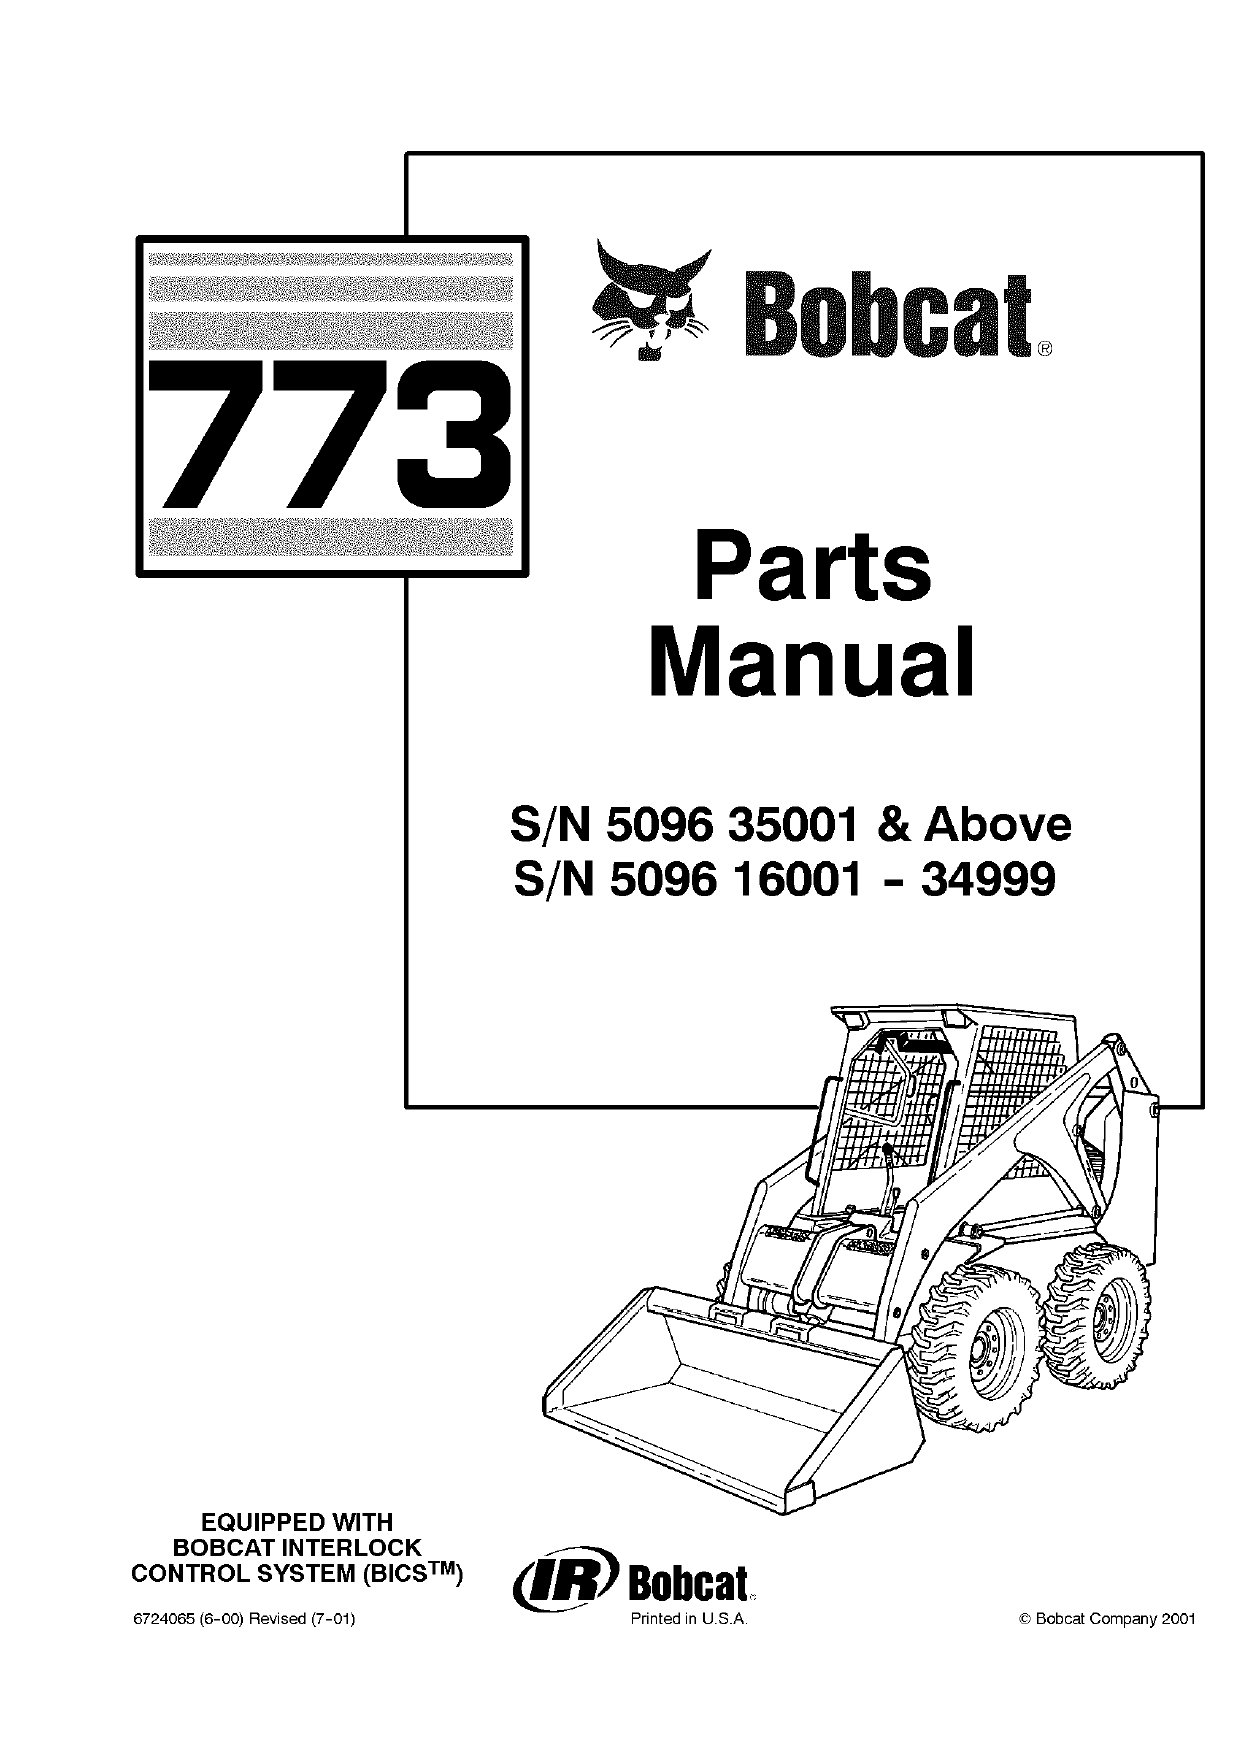 hight resolution of untitled used loader parts manualzz combobcat 773 part number 6576261 diagram 17